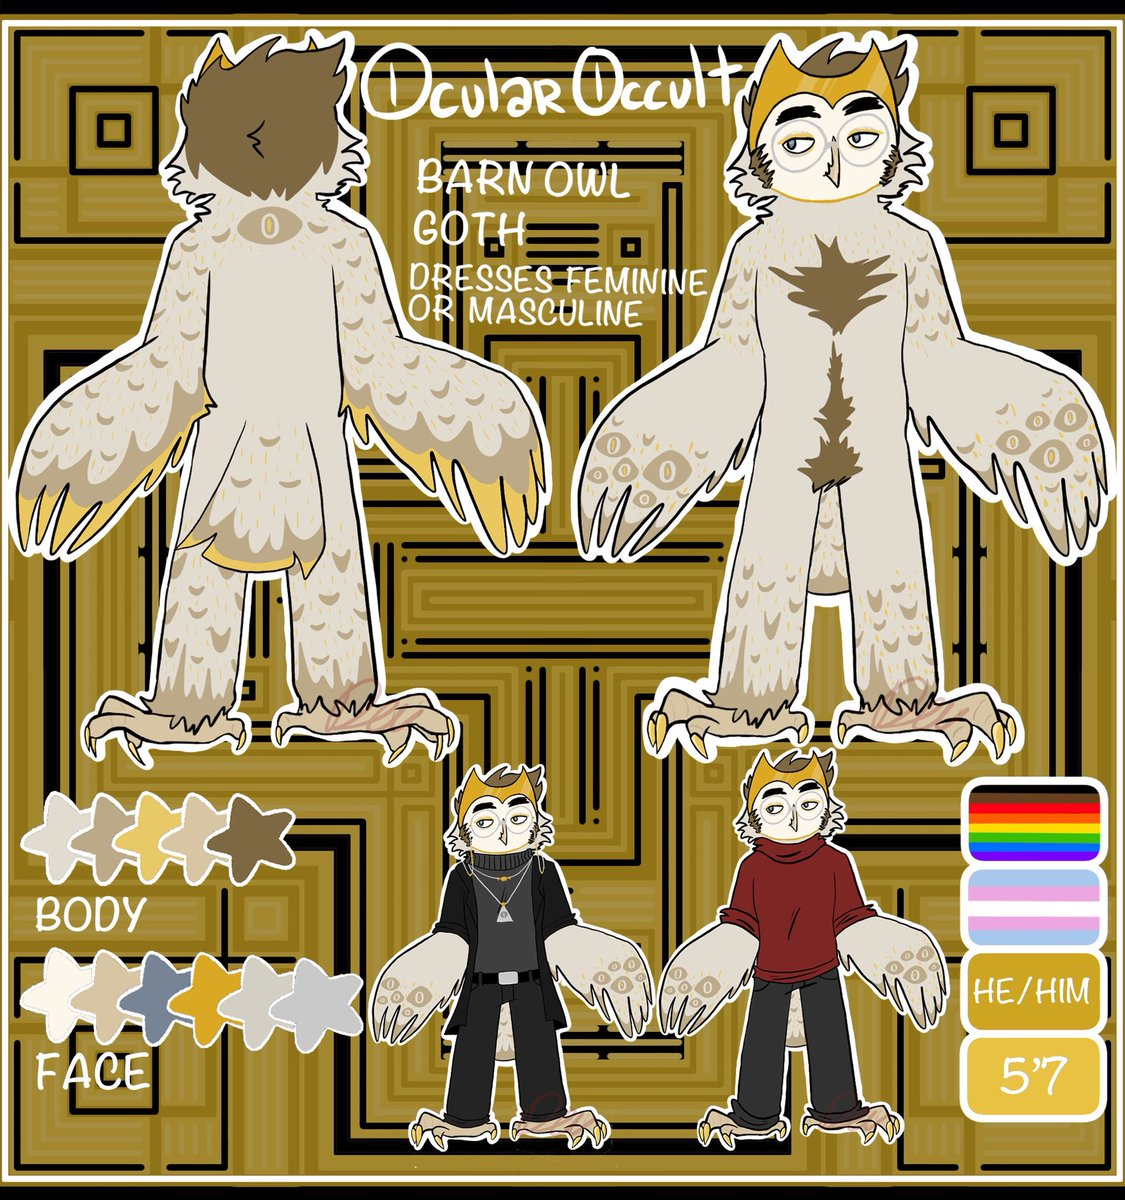 Alright my full fursona ref!! He is also called Devin and he's a creepy goth barn owl with some spooky magic shit goin on. #fursona #FurryFriday <br>http://pic.twitter.com/nJNC779GLD